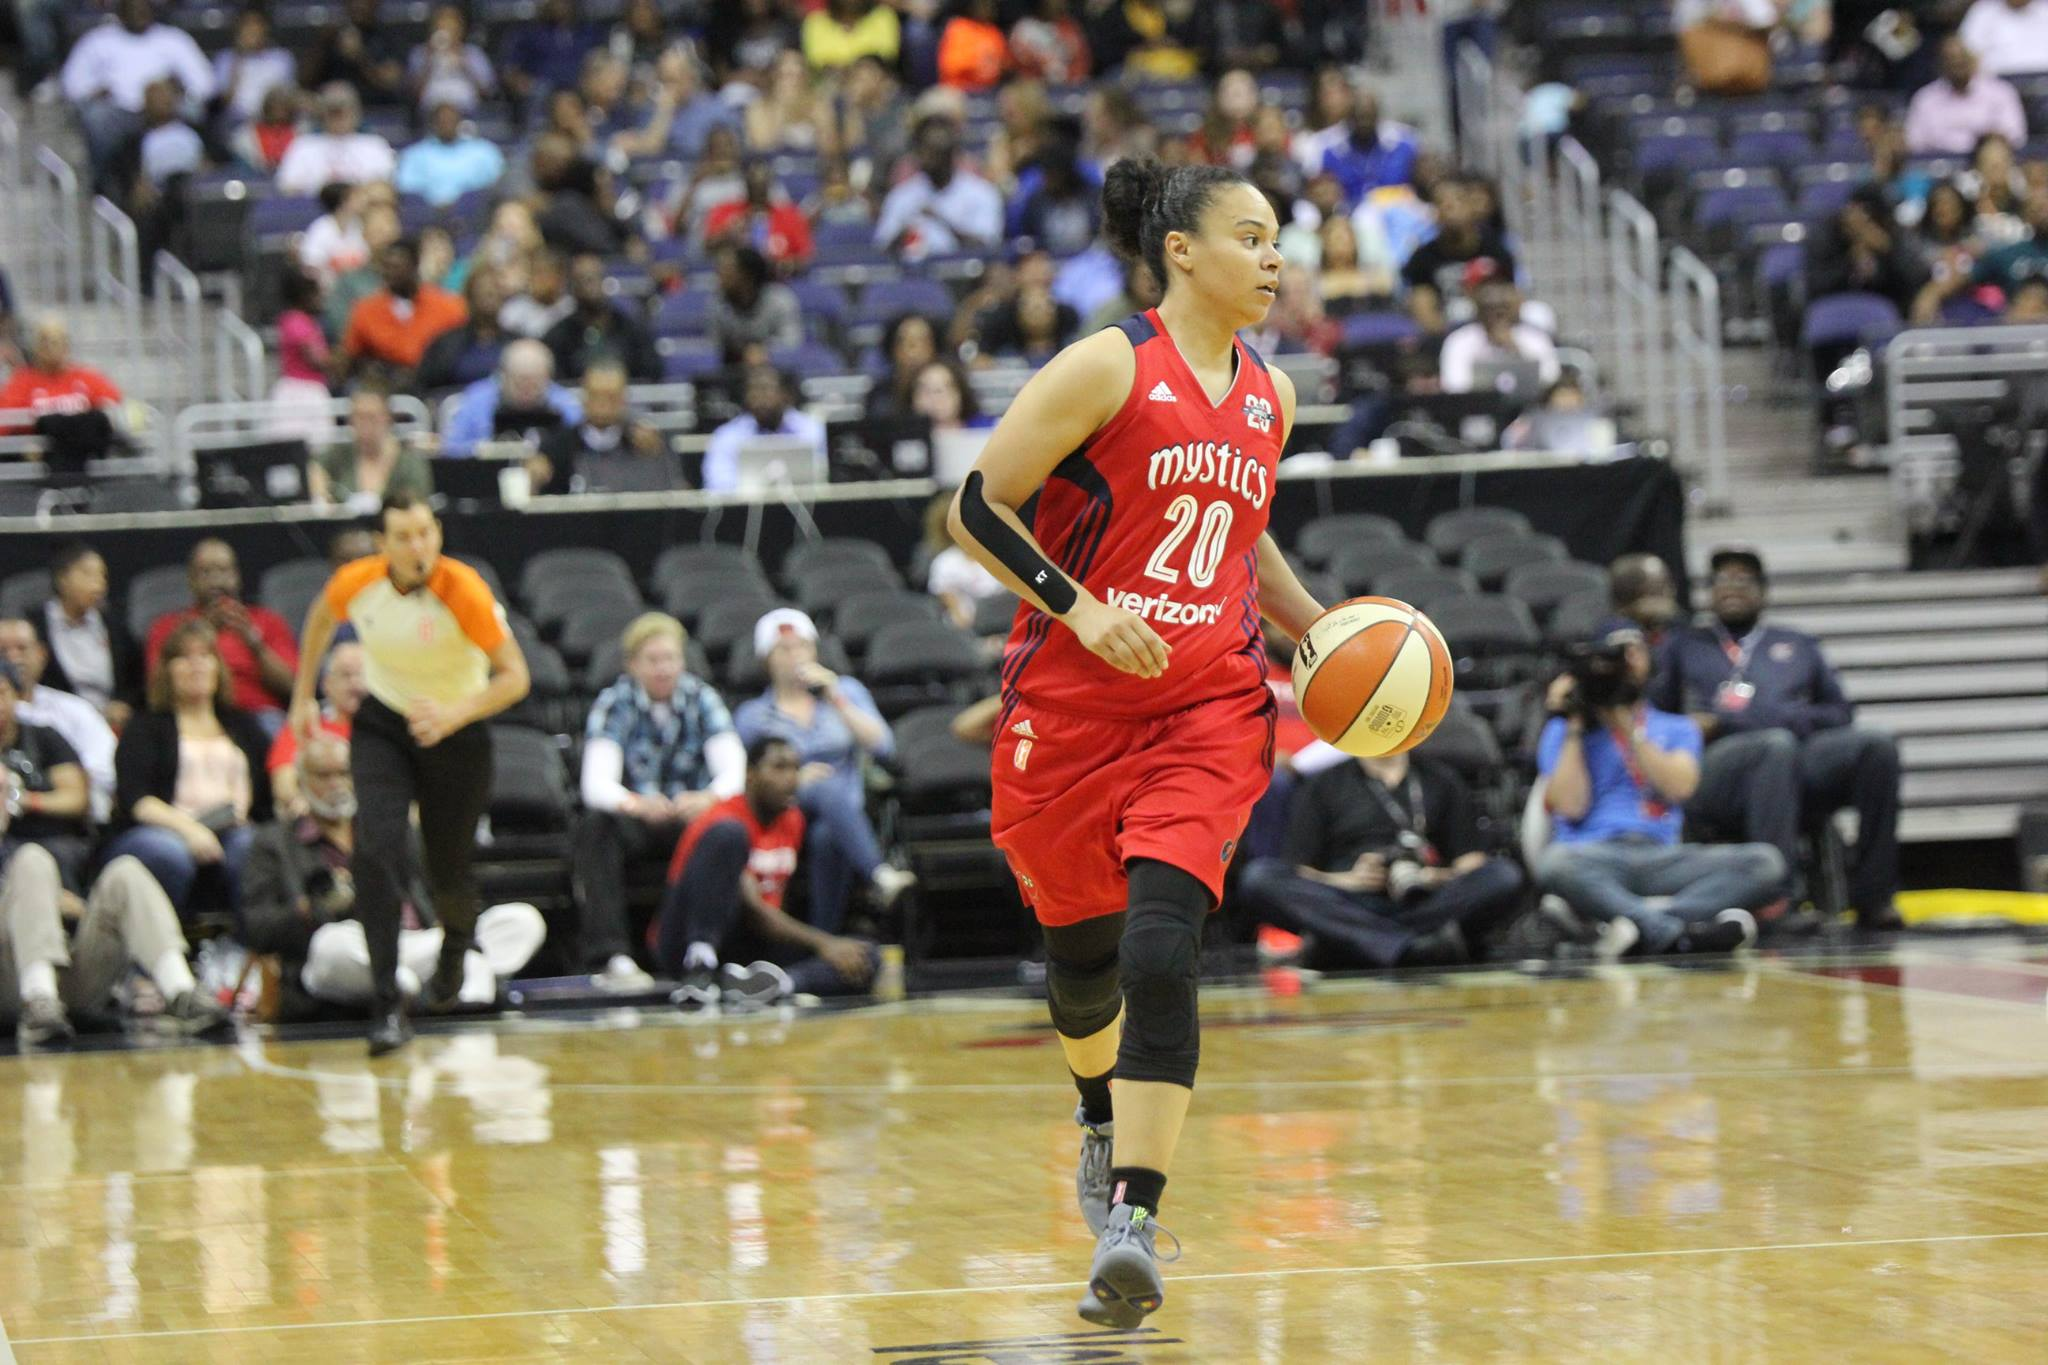 The Mystics will need All Star Toliver down the stretch.